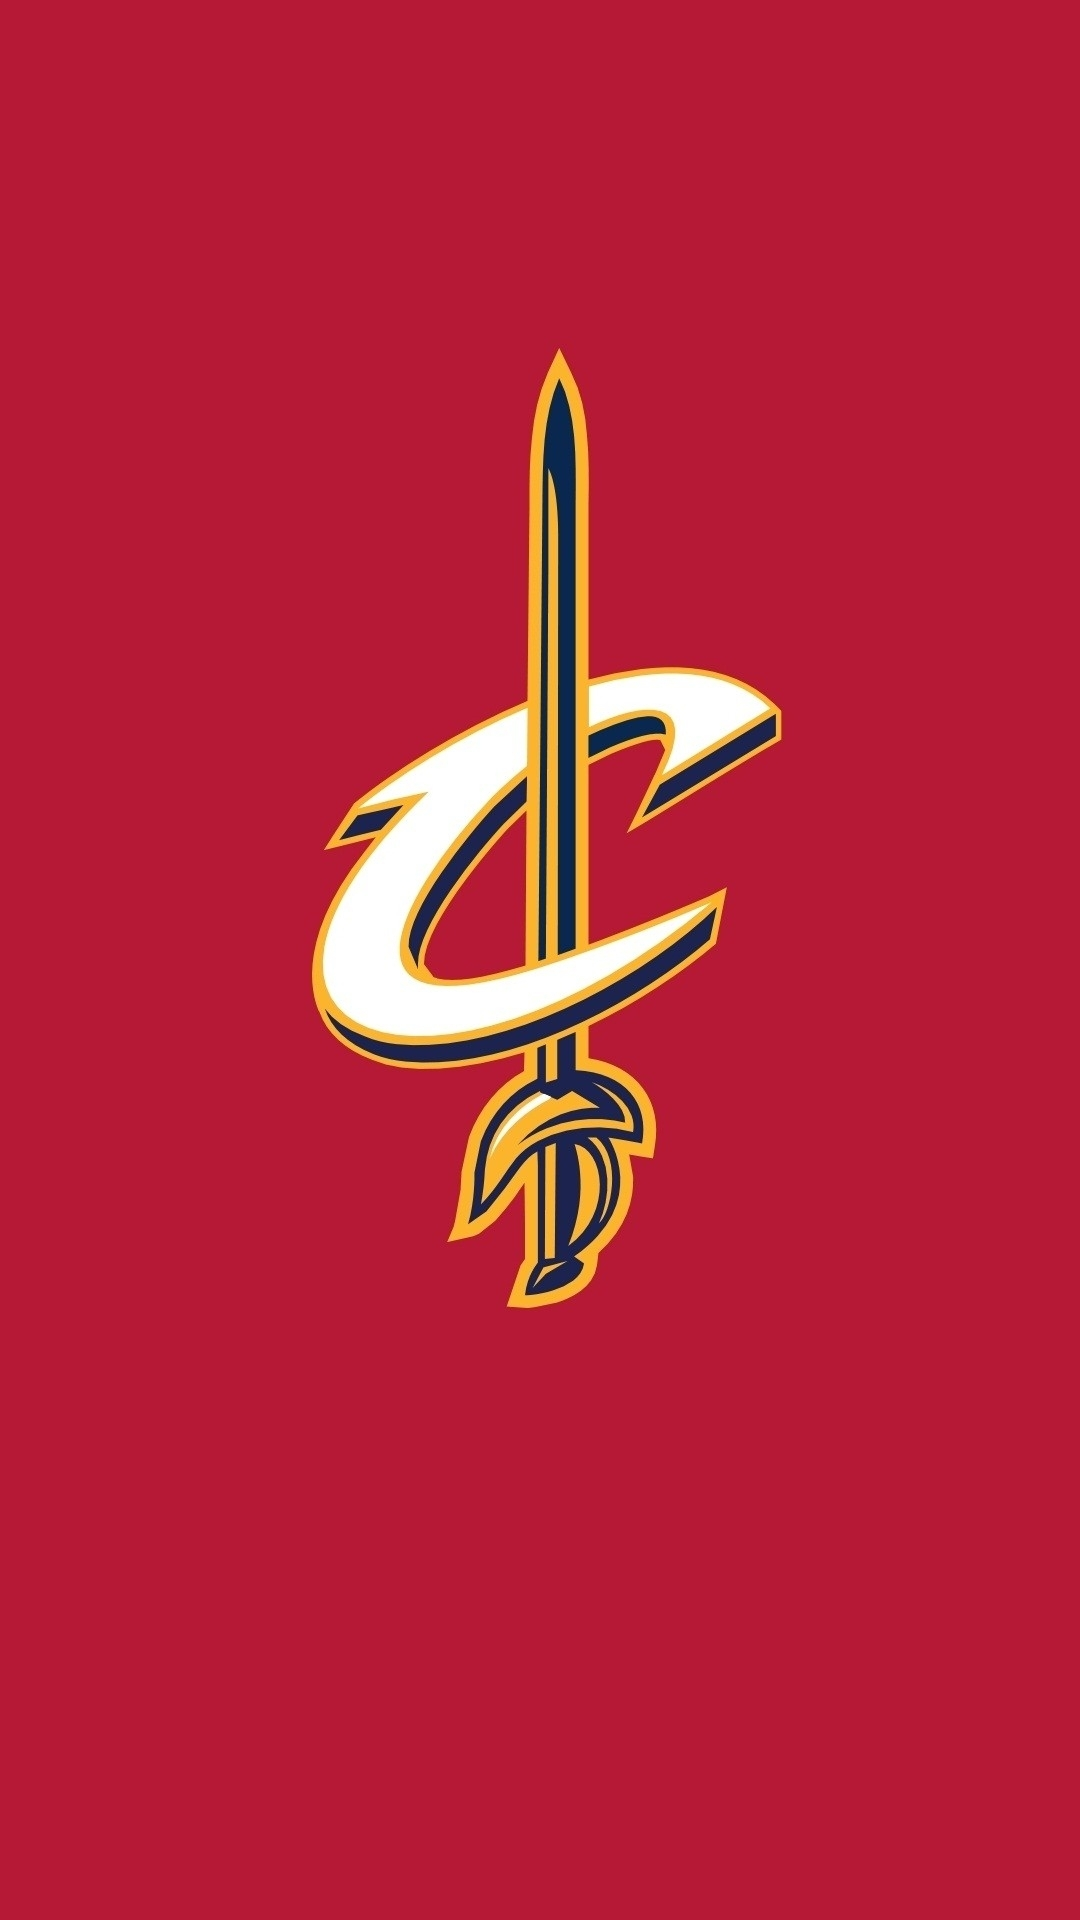 cleveland cavaliers wallpaper for iphone - 2018 iphone wallpapers